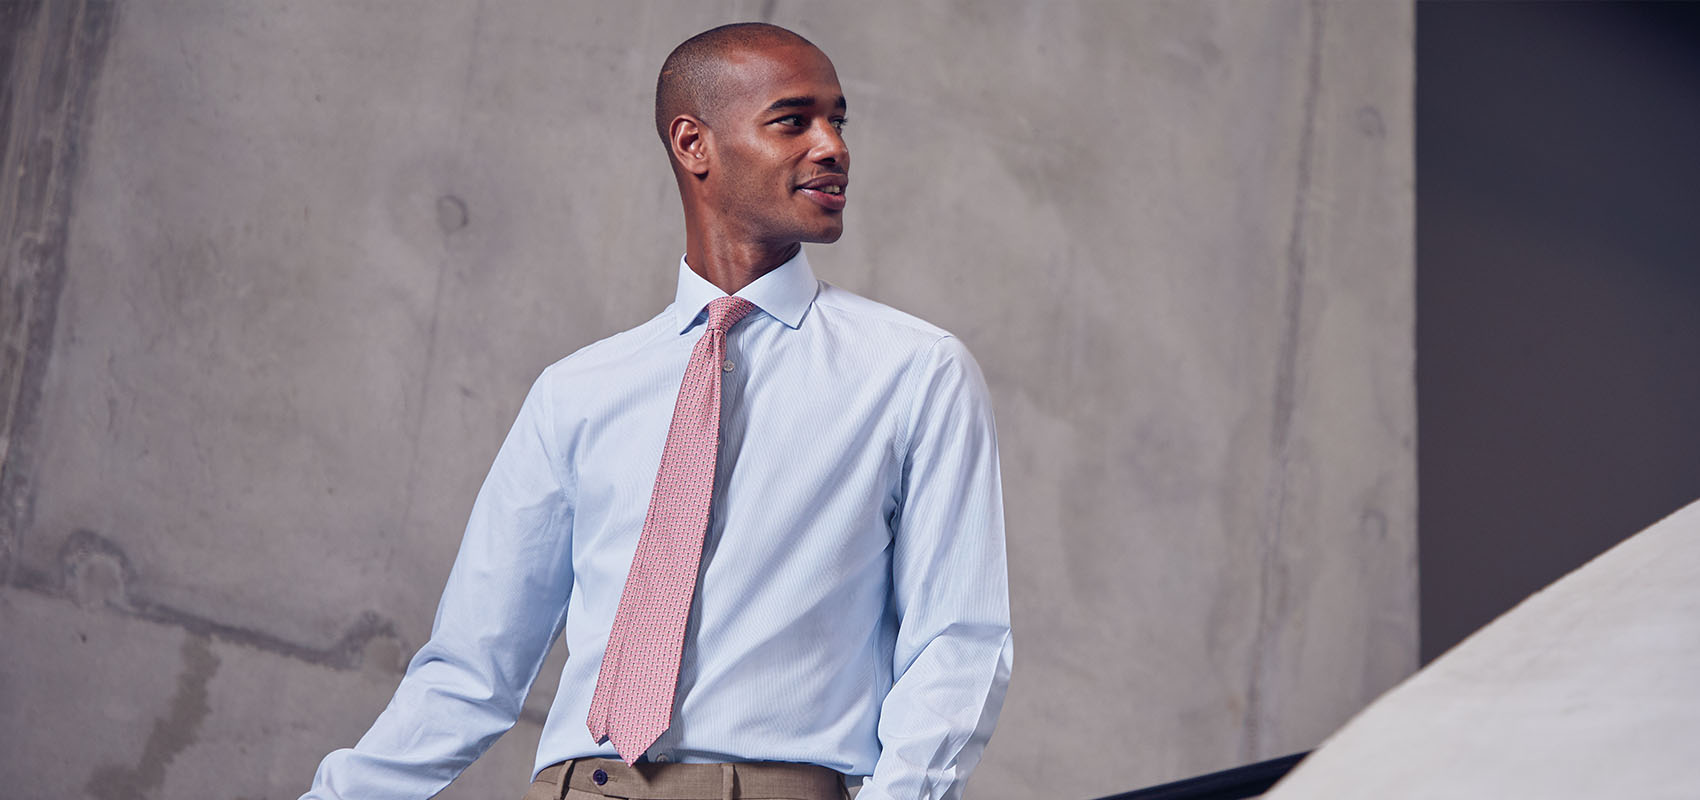 Charles Tyrwhitt Formal Shirts